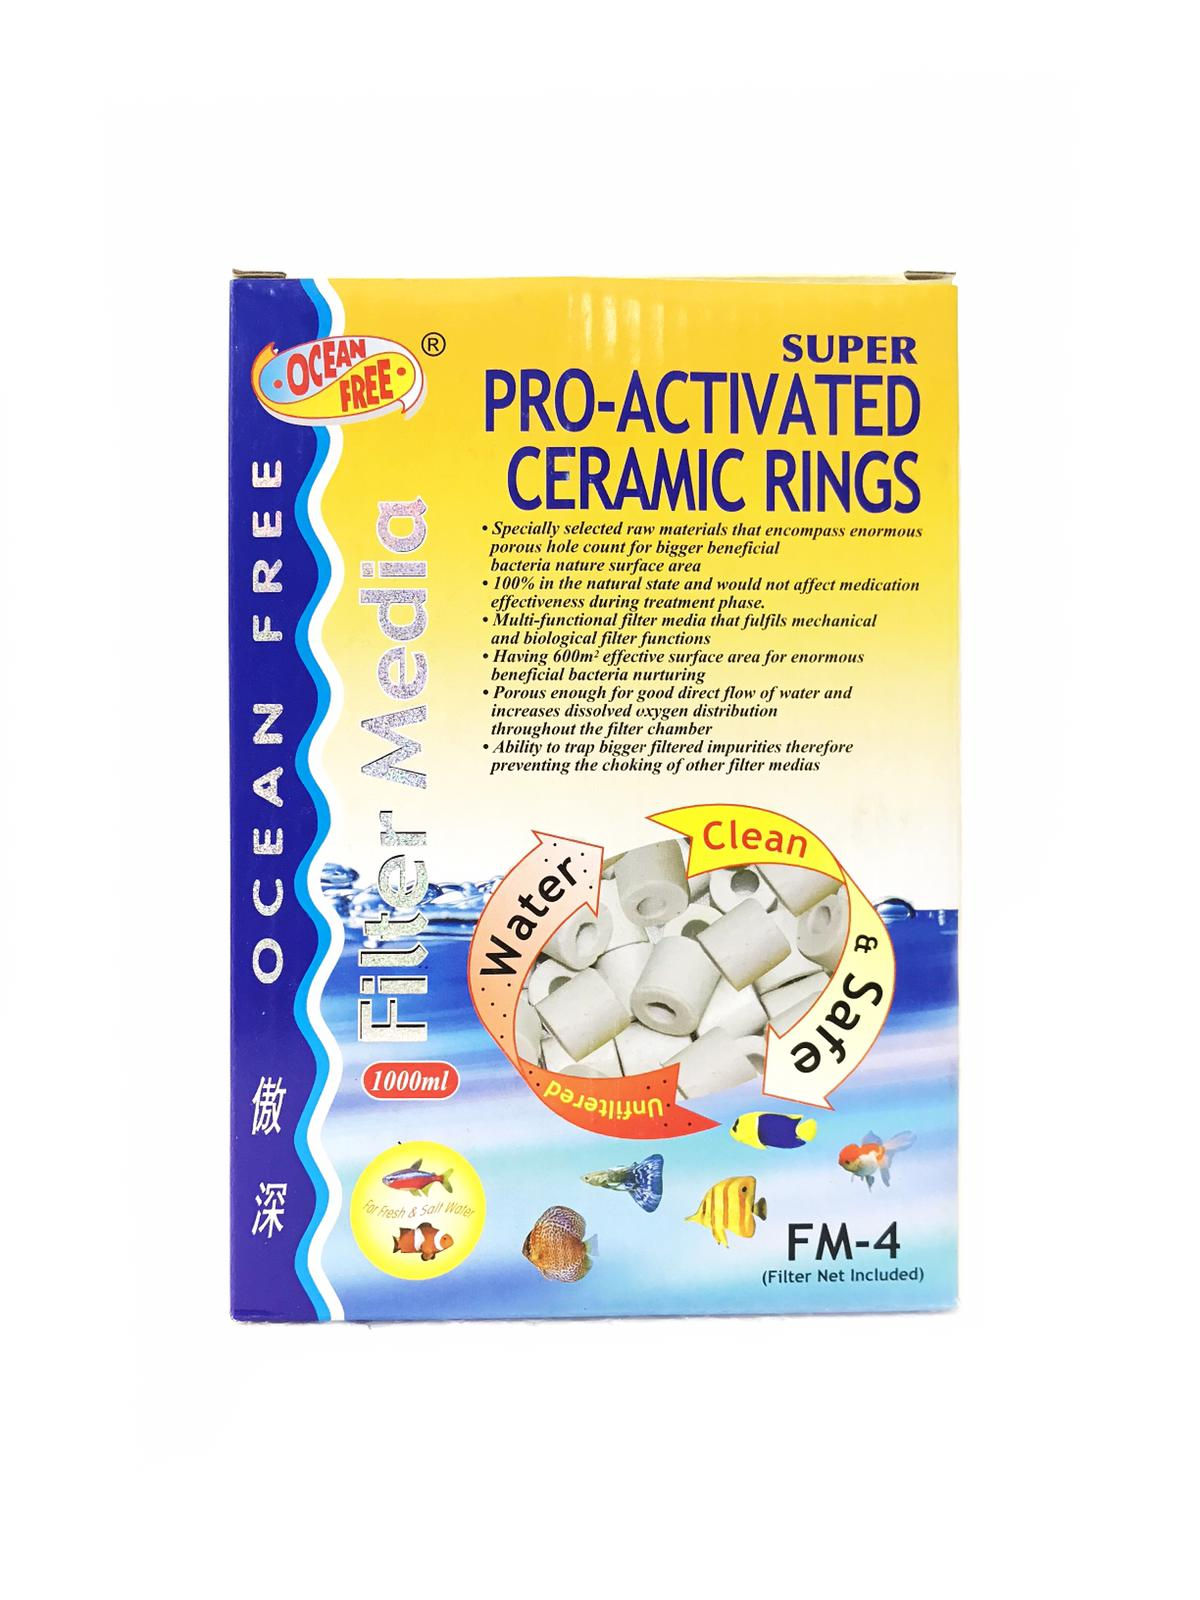 OF Super Pro-Activated Ceramic Rings FM-4